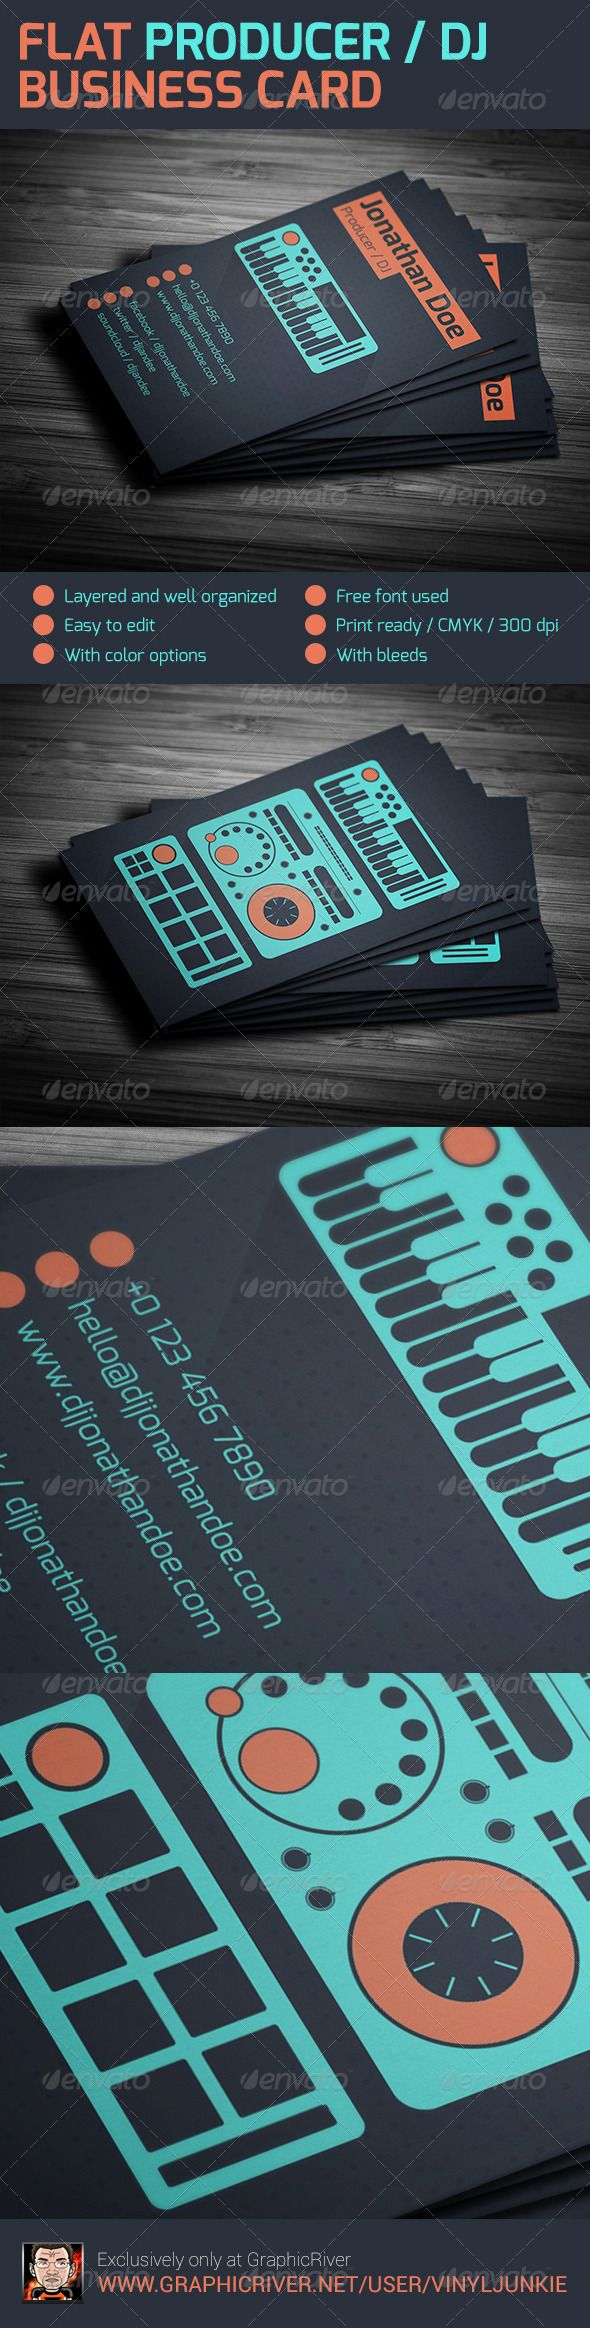 34 best DJ Business Cards images on Pinterest | Dj business cards ...